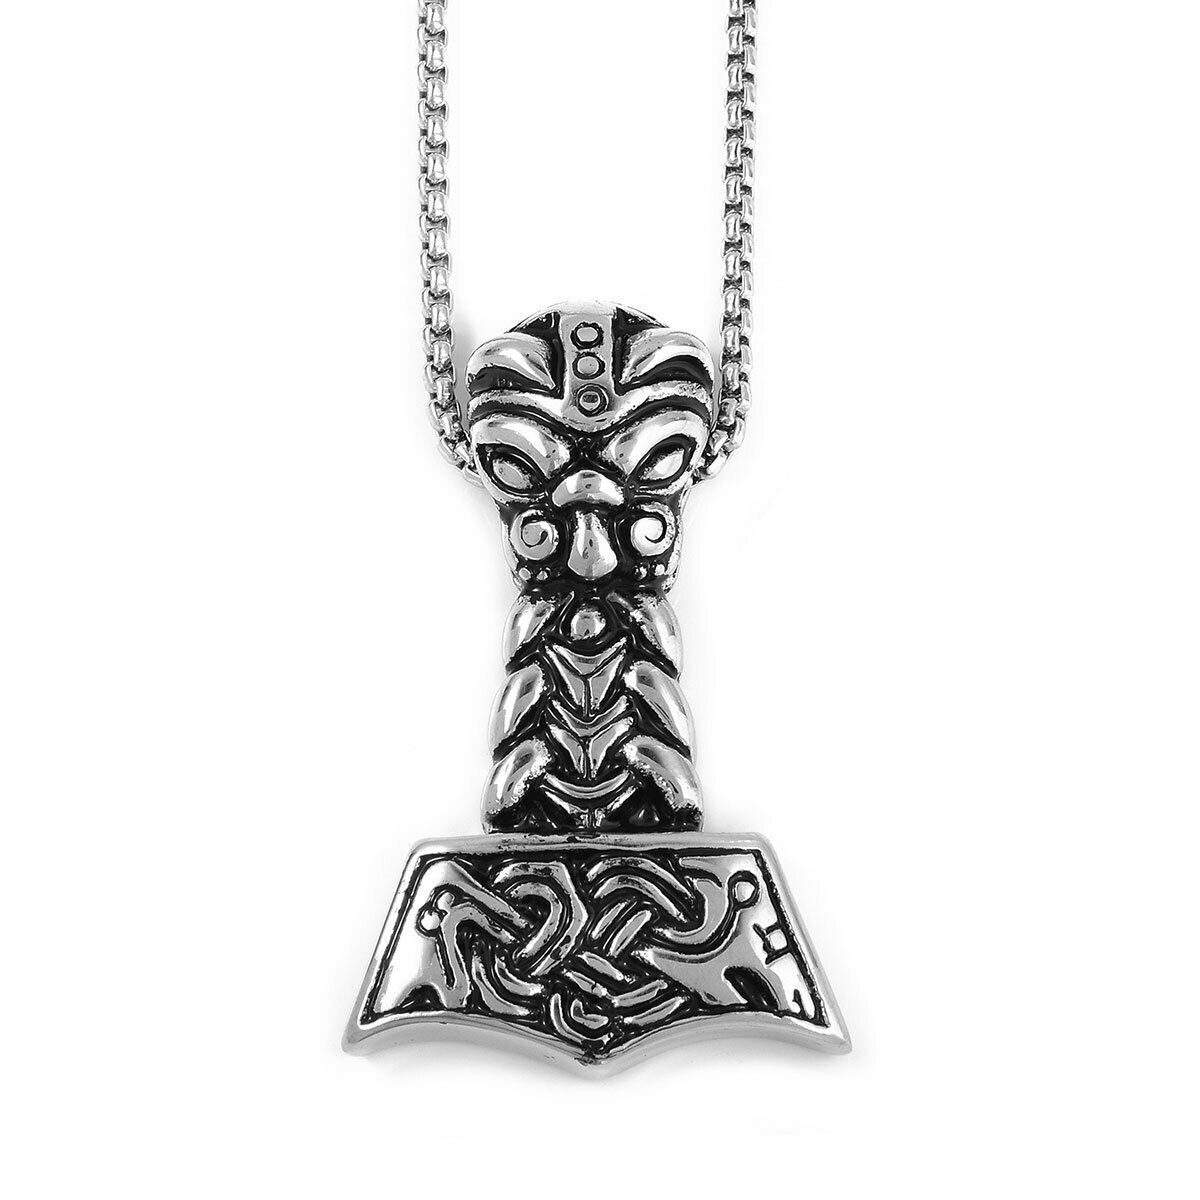 Halloween Mascot Pendant Necklace 24 Stainless Steel Lead Nickel Free - $12.99